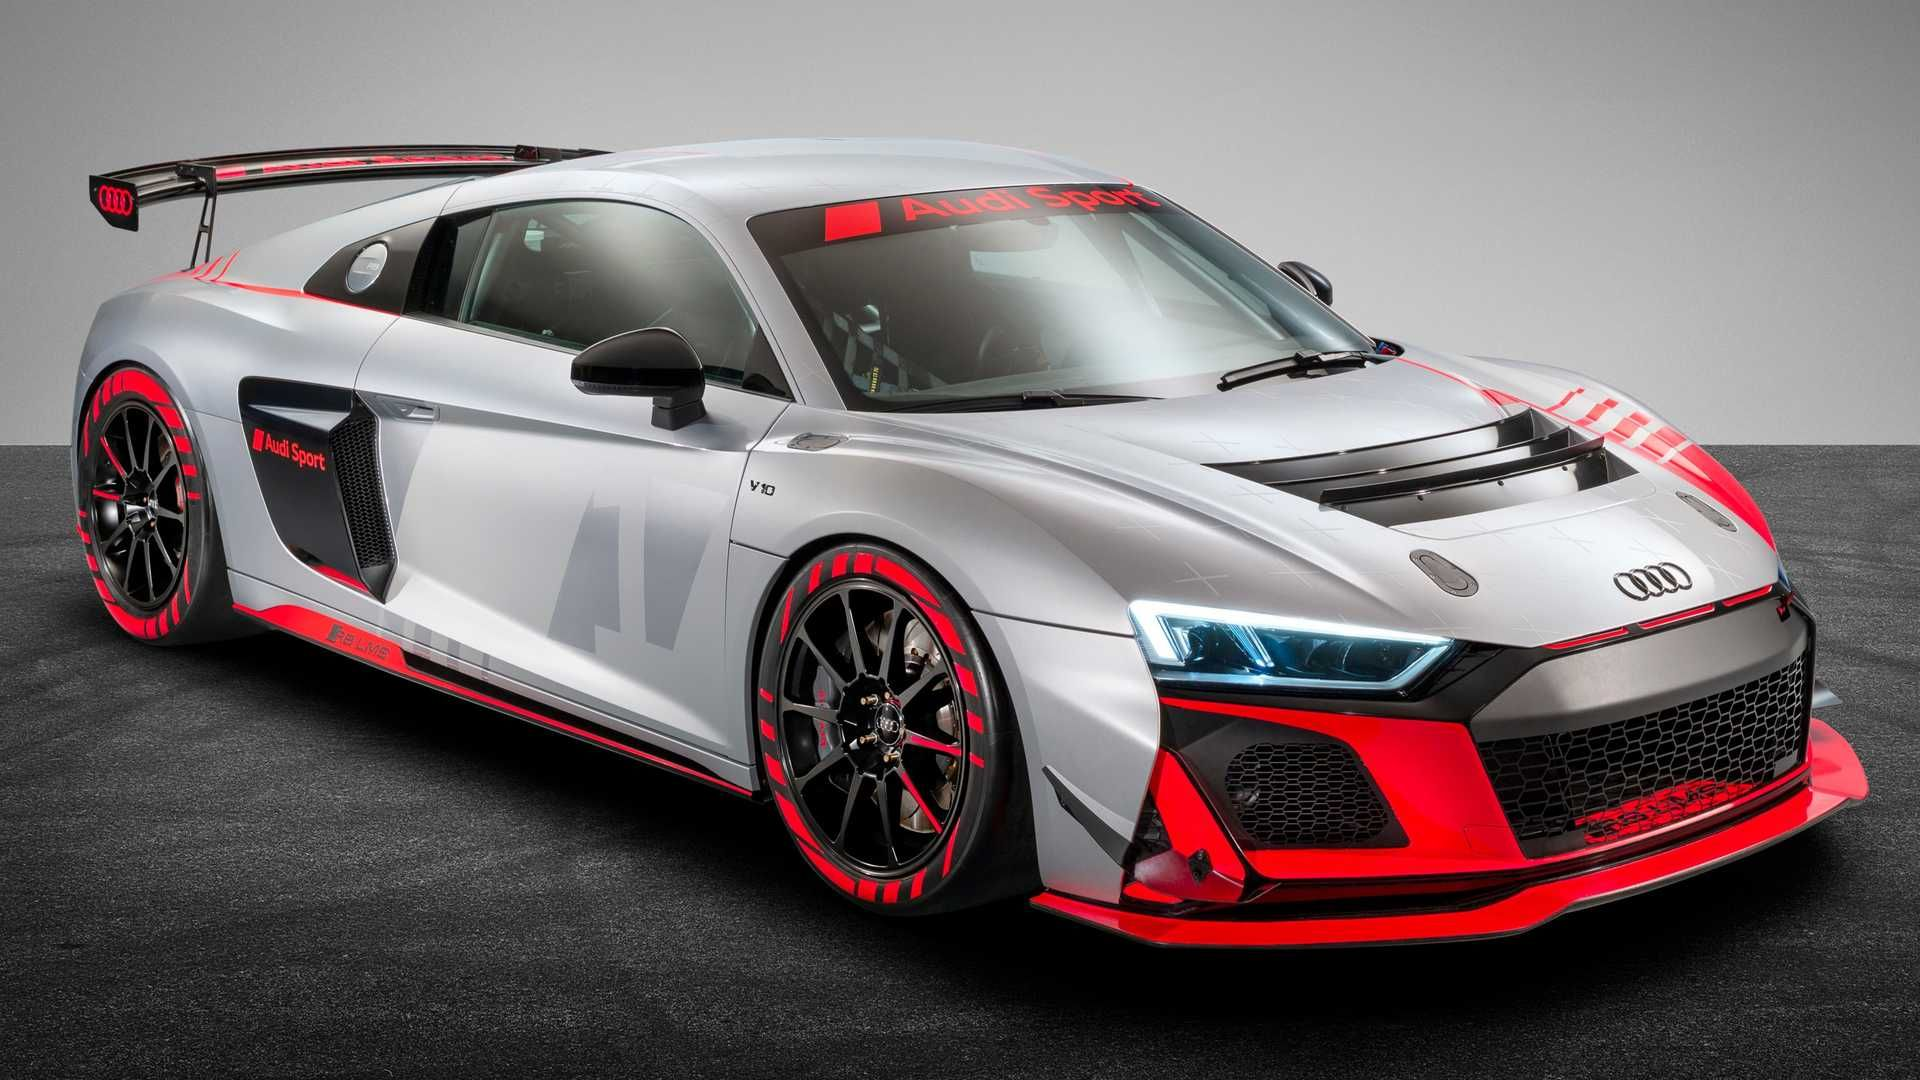 2020 Audi R8 Lms Gt4 Looks Ready To Win Audi R8 Audi Car